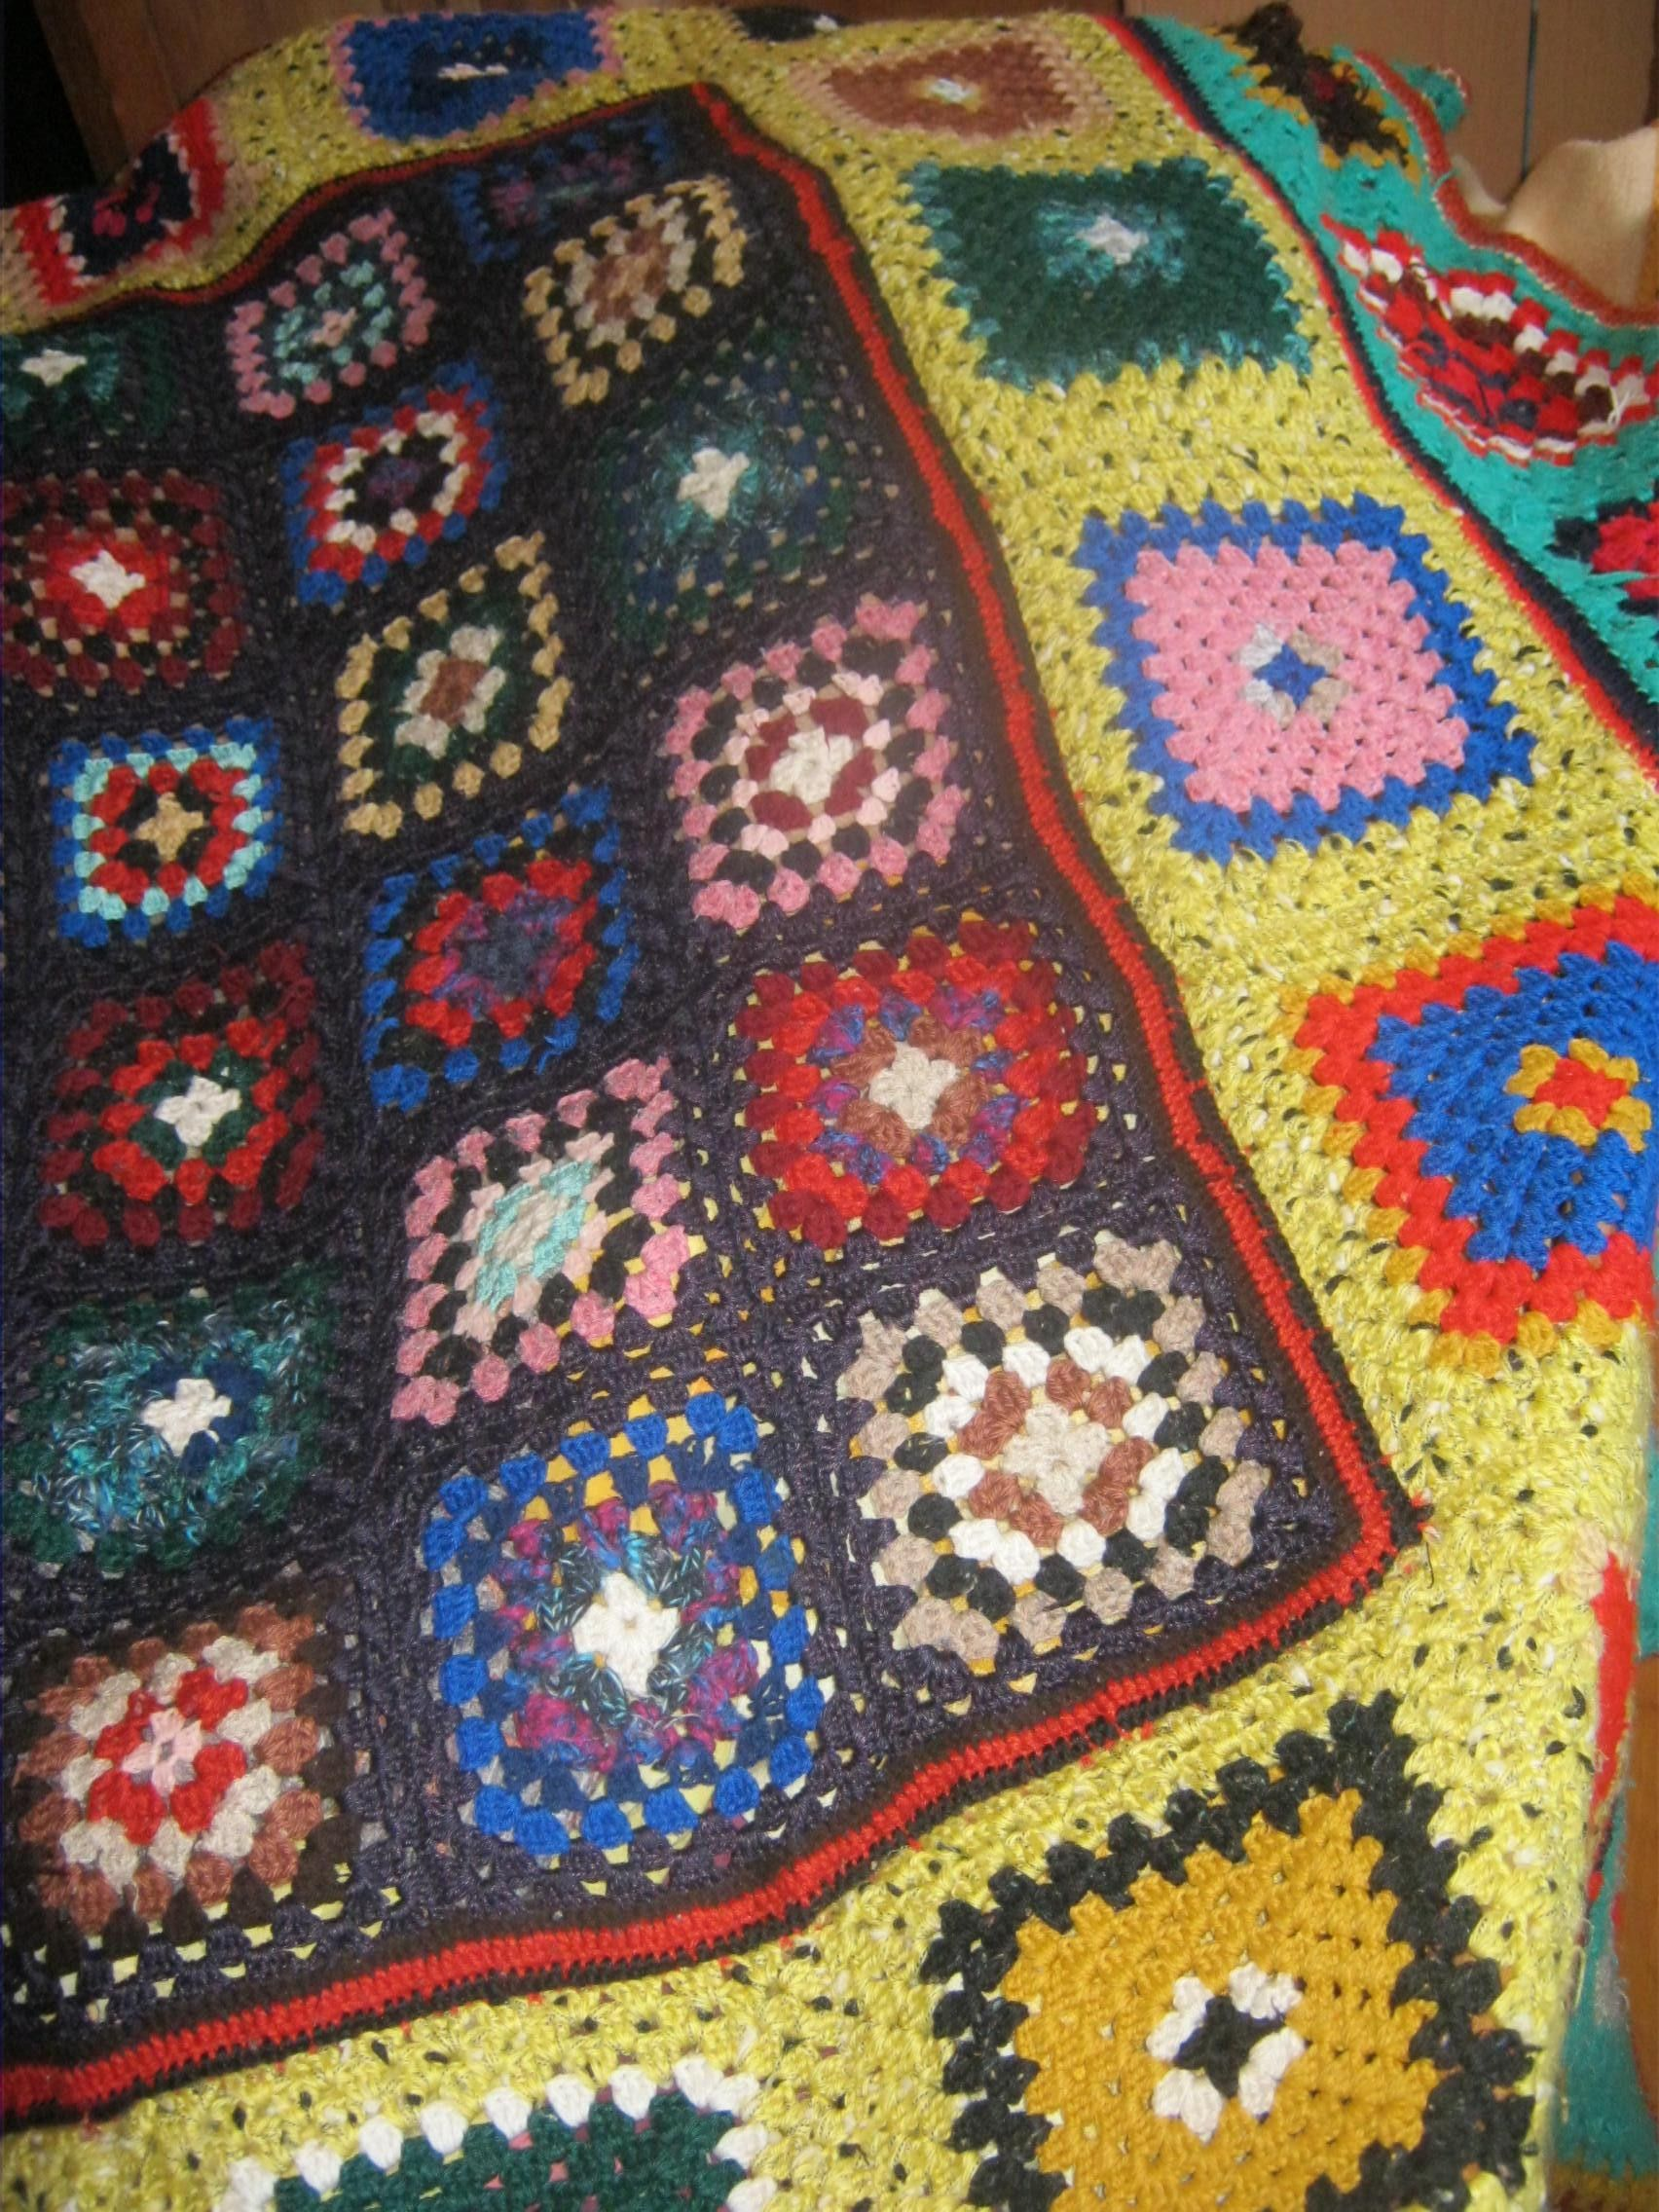 How to Crochet an Easy, Granny Square Bedspread for a King